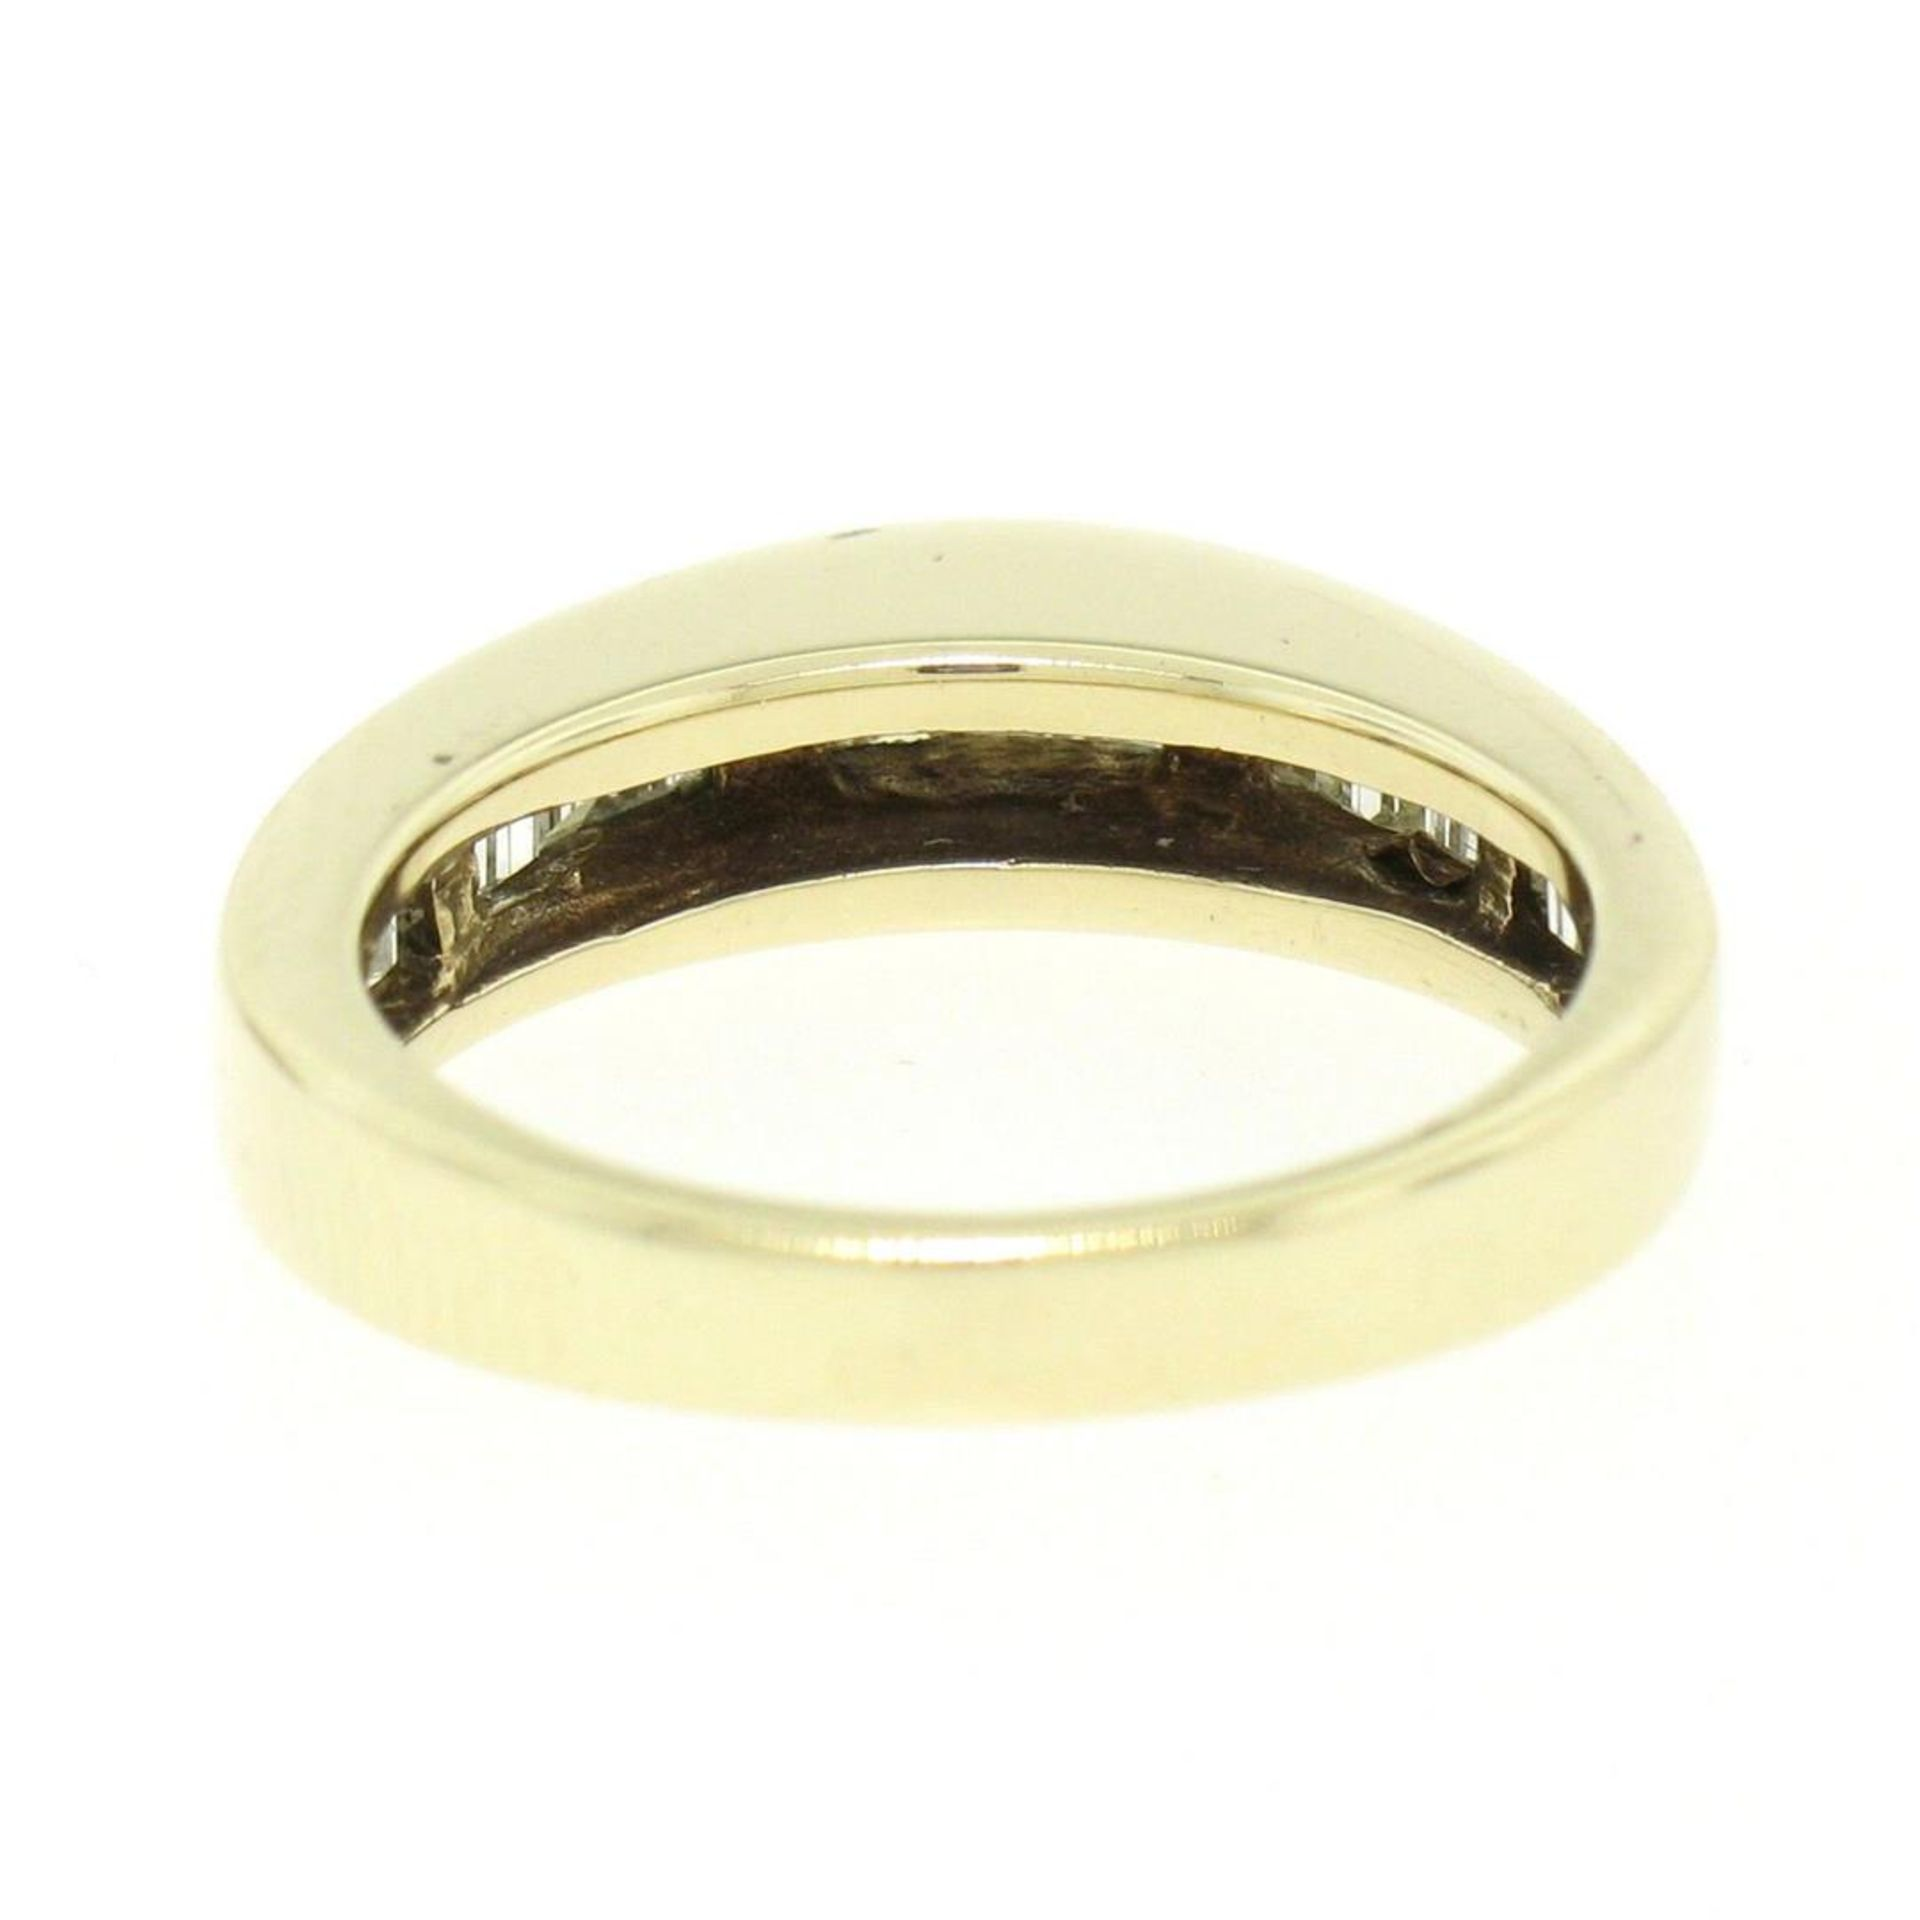 14kt Yellow Gold 1.00 ctw Baguette Diamond Channel Domed Wedding Band Ring - Image 6 of 9